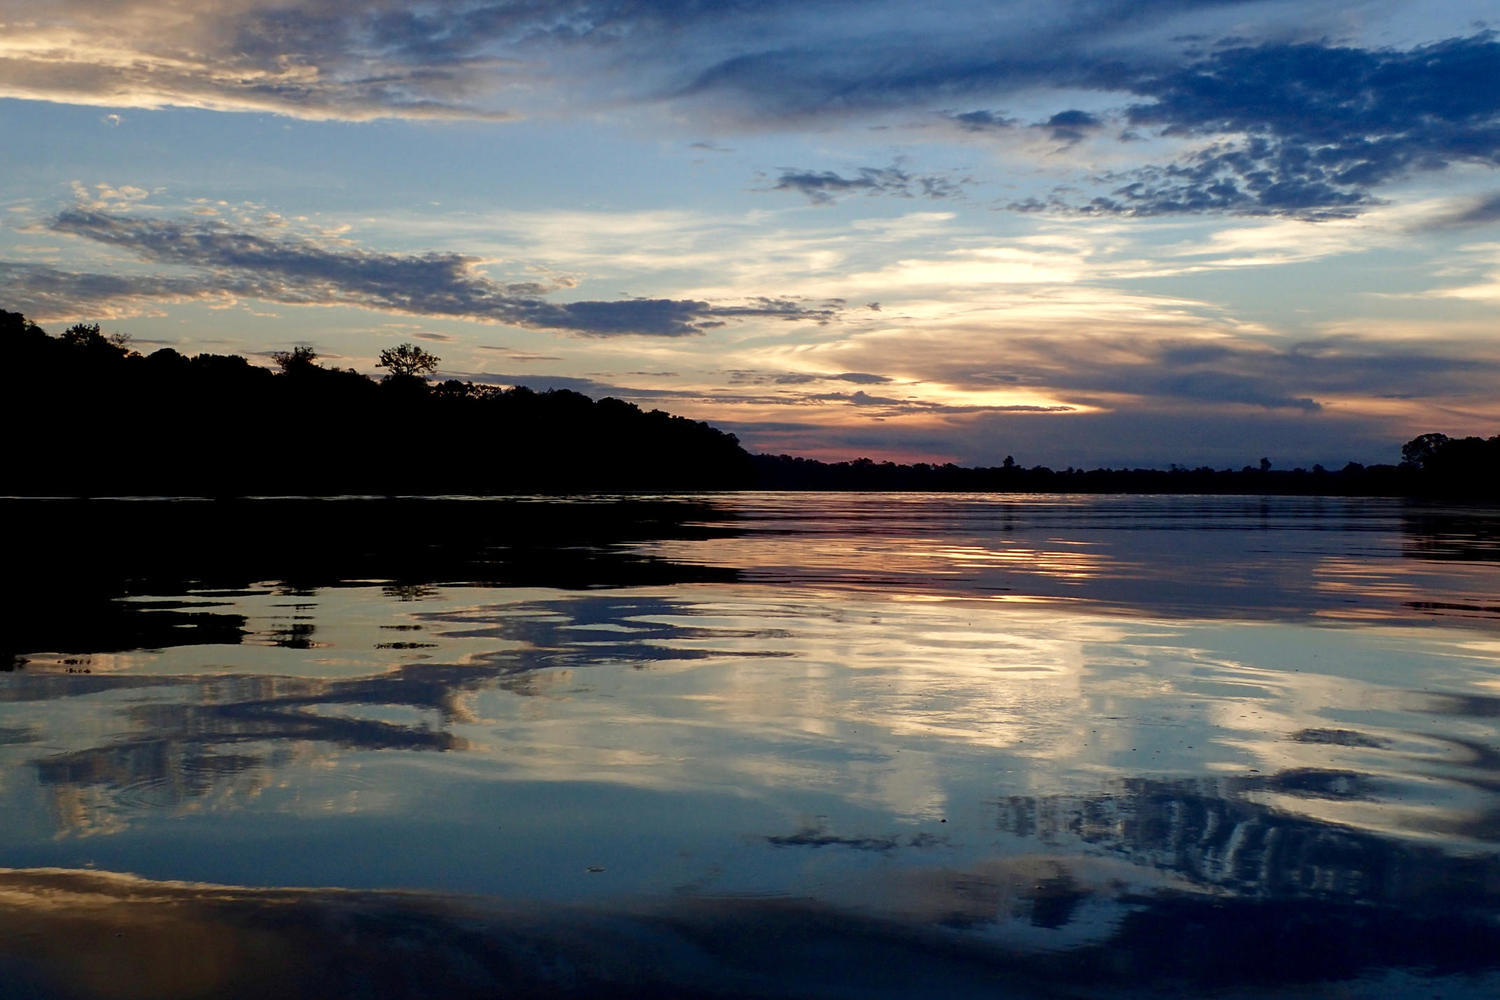 Sunset over the river in Cristalino Reserve, Amazon